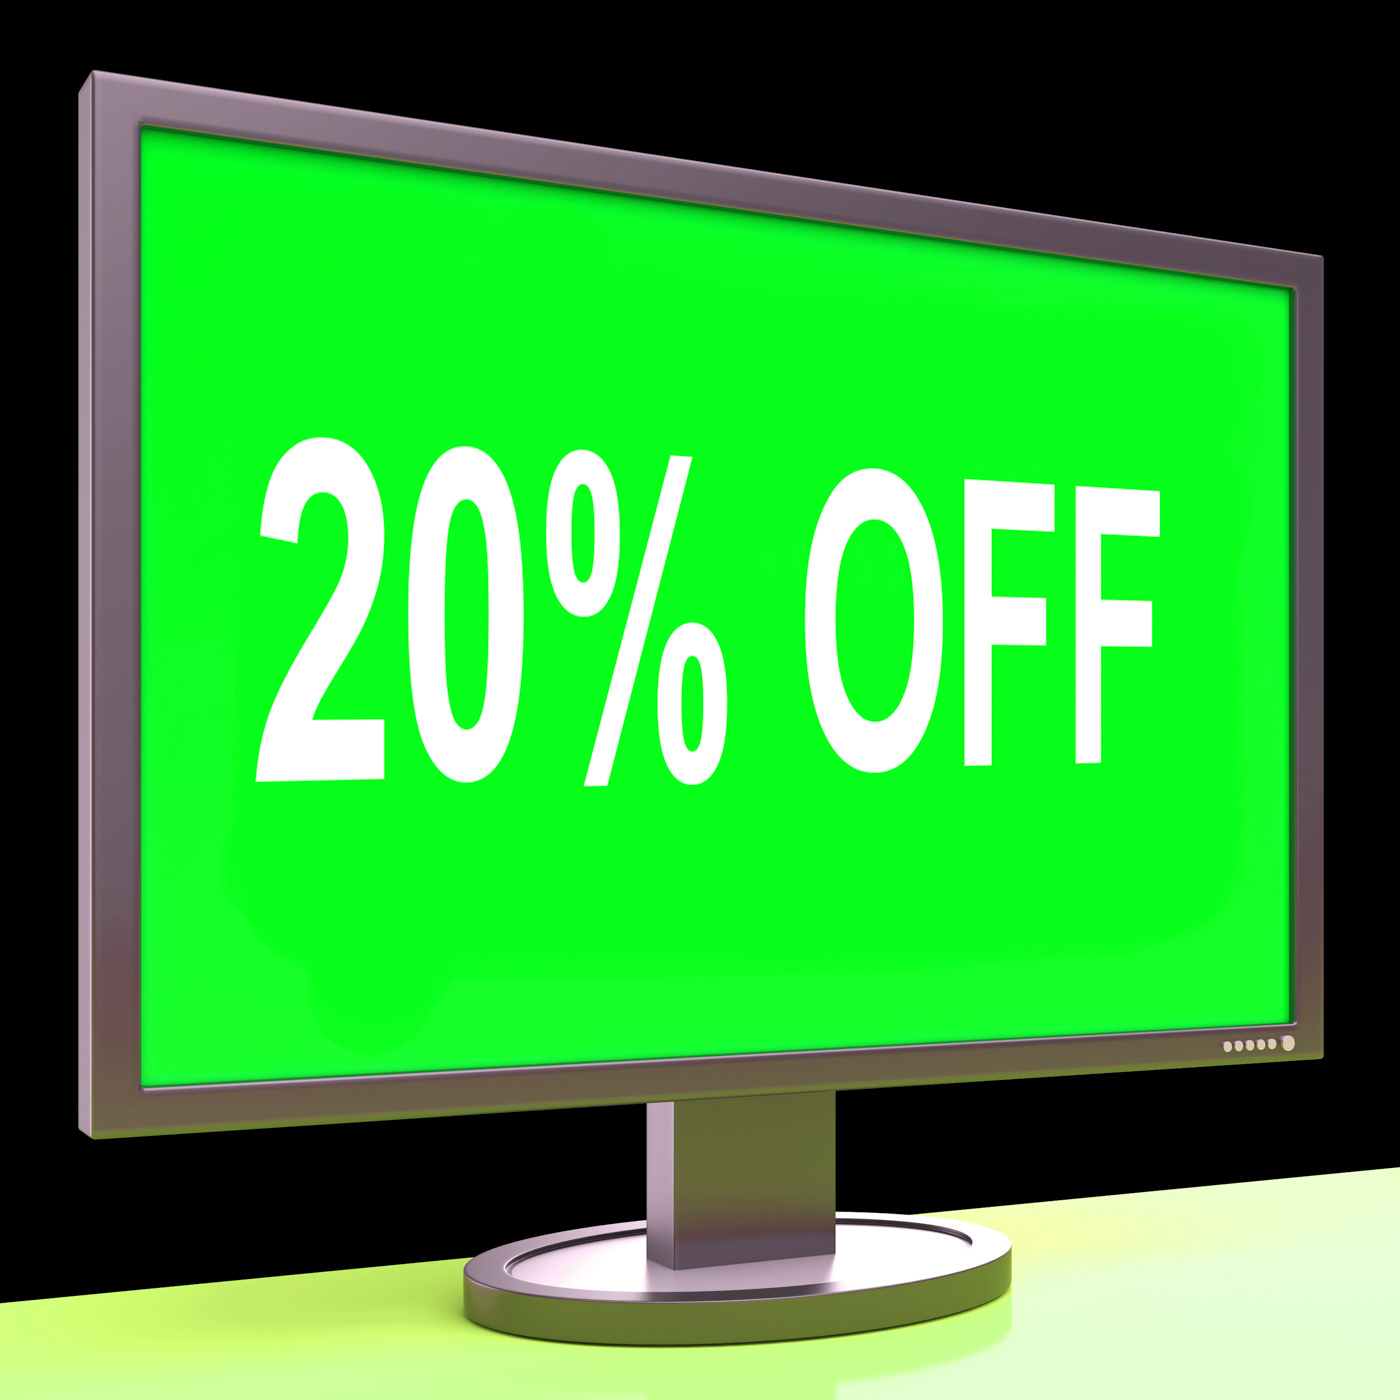 Twenty percent off monitor means discount or sale online photo